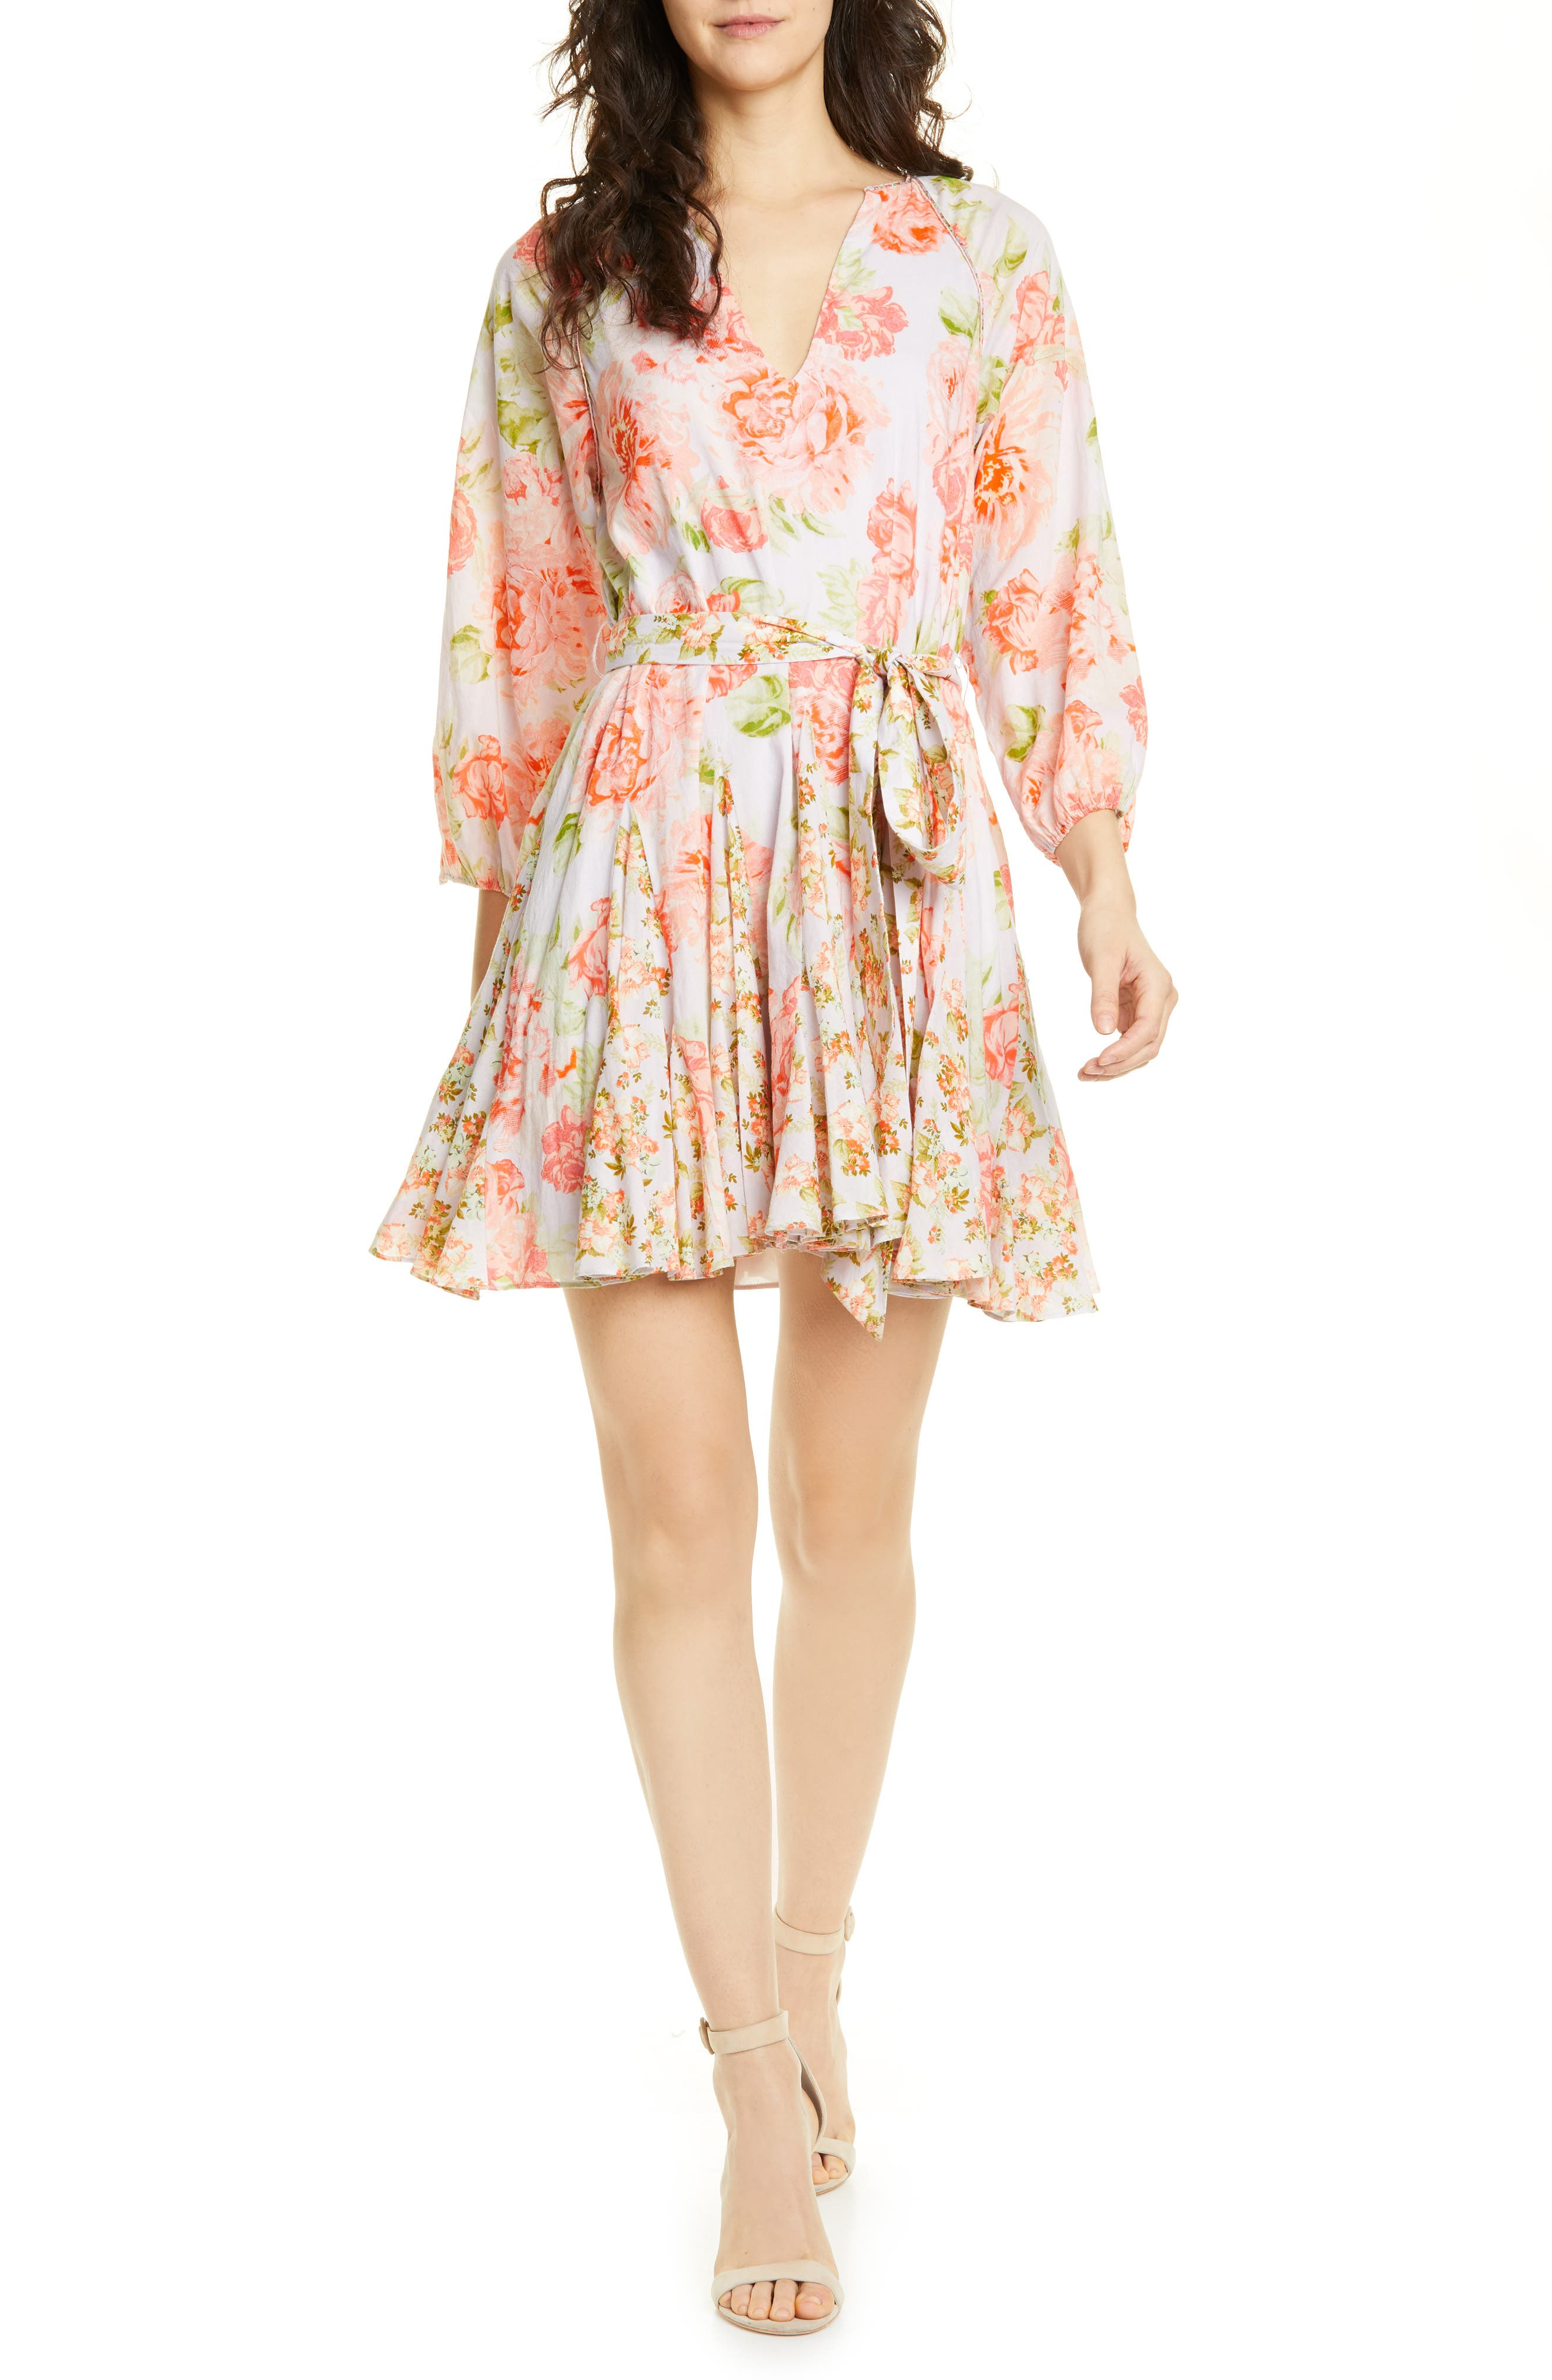 Alice + Olivia Floral Tie Front Cotton Dress, Pink